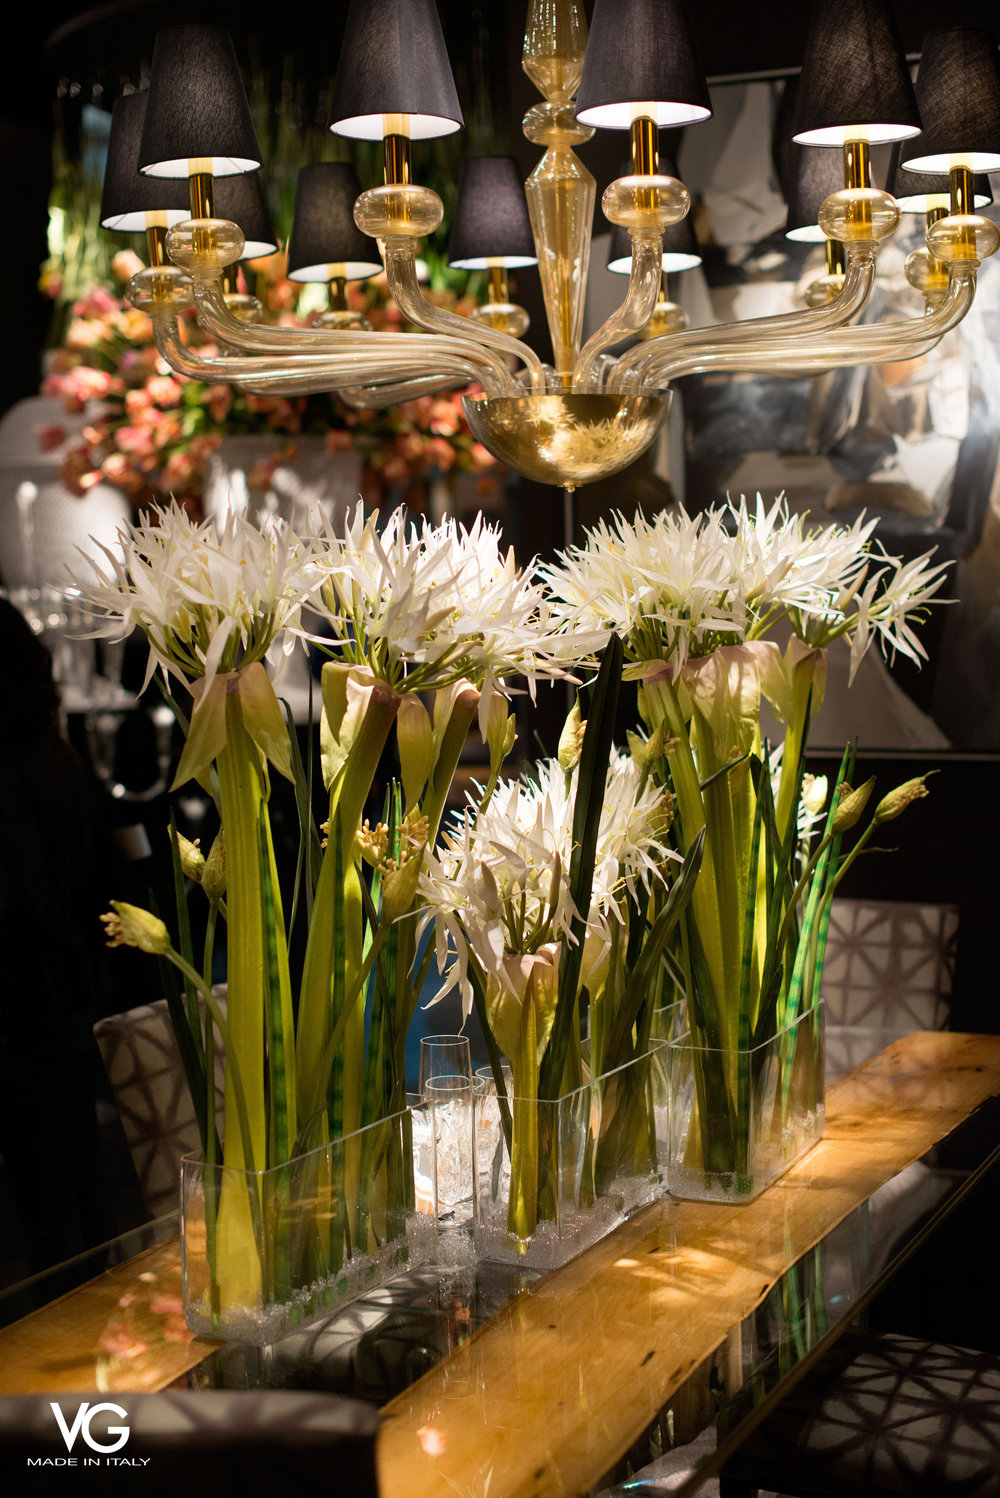 VG New Trend - flower arrangments during the Salone del Mobile in Milan - Masha Shapiro Agency.jpg